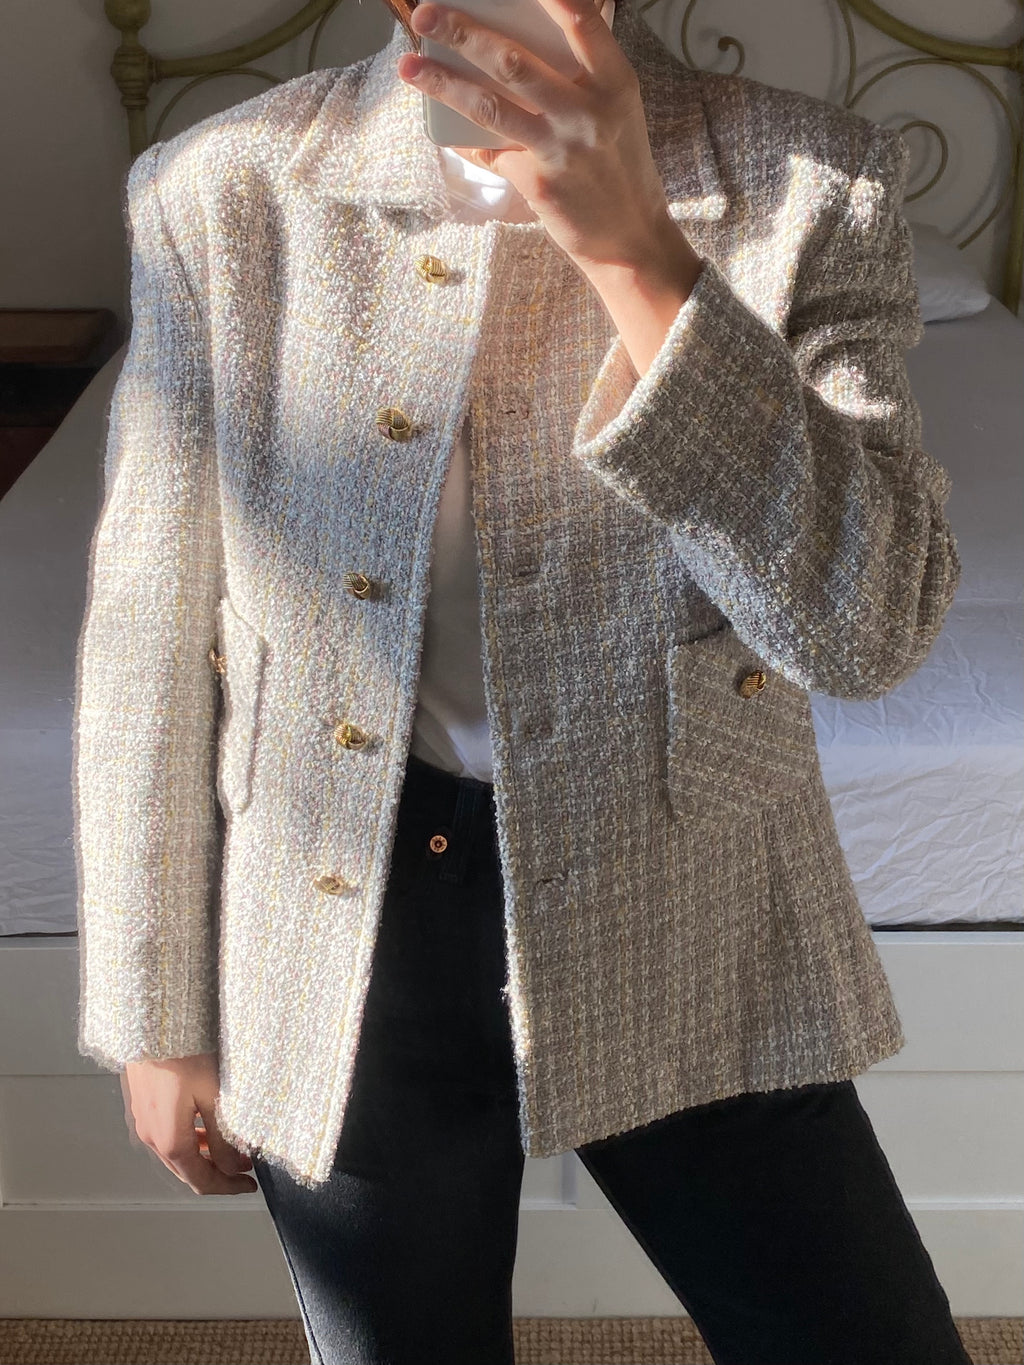 Vintage tailoring pastel jacket with jewels buttons